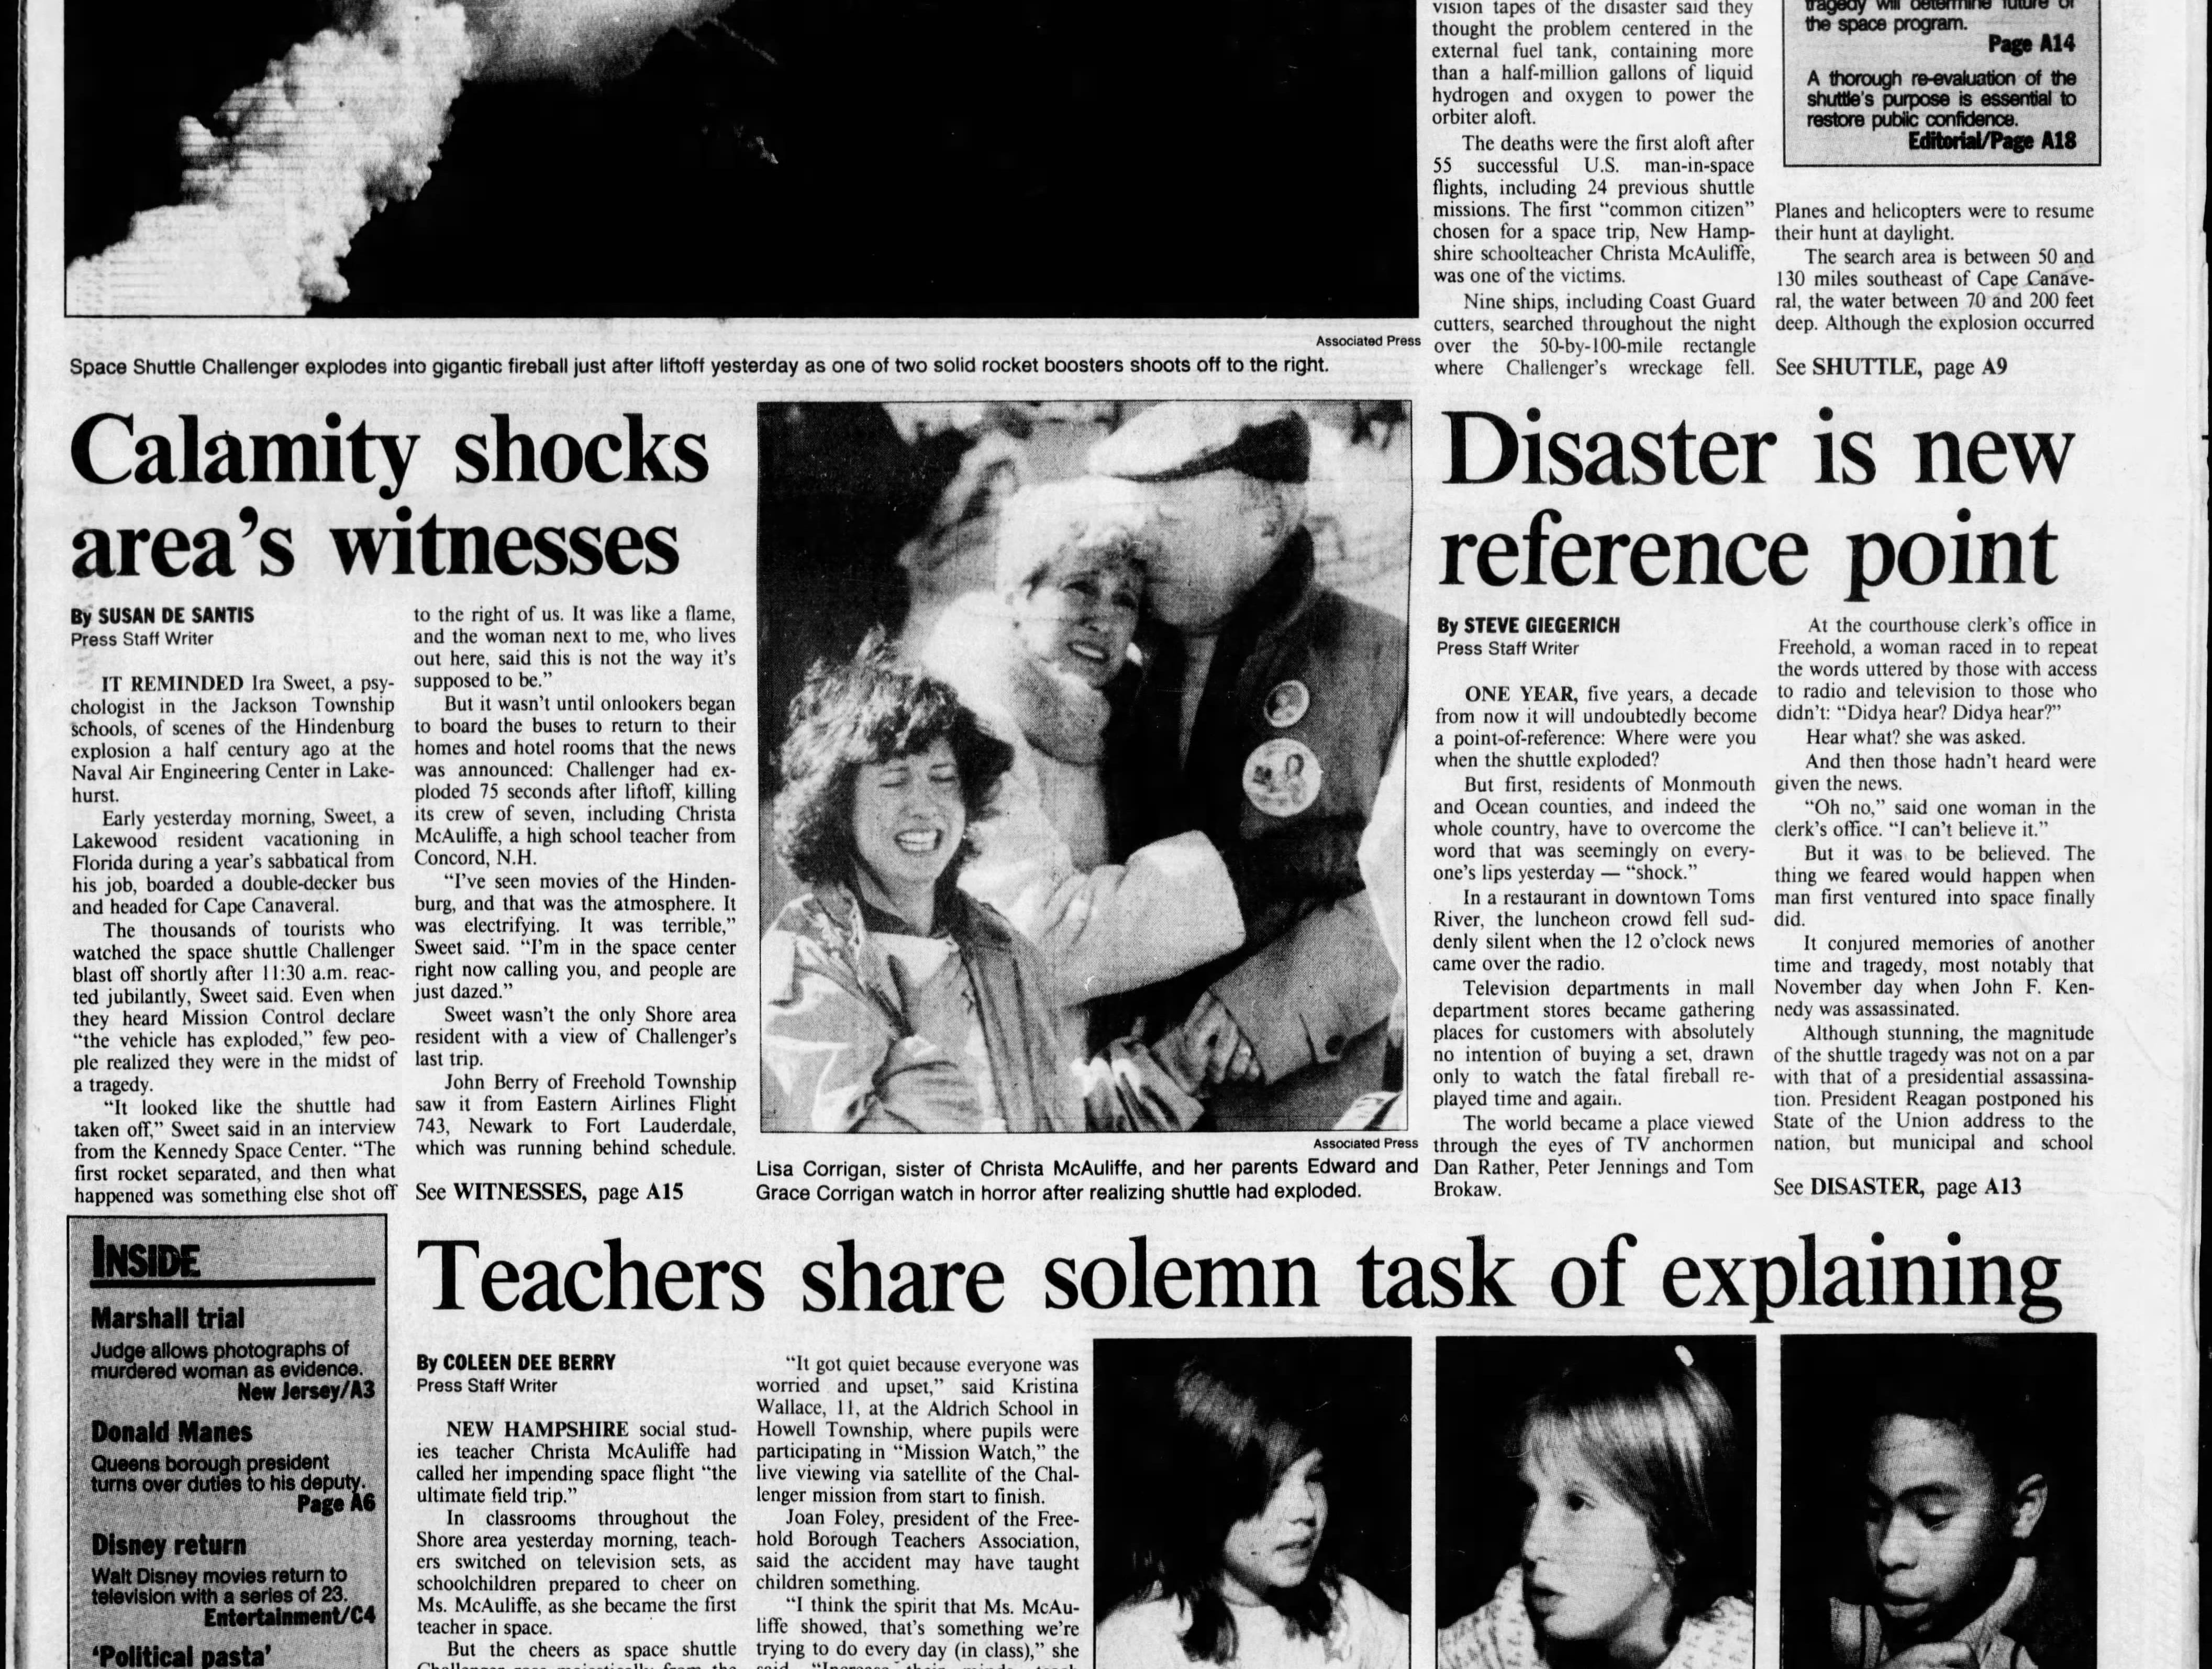 """The space shuttle Challenger is destroyed 73 seconds after liftoff, killing seven astronauts aboard, including the """"first teacher in space"""" Christa McAuliffe. The Asbury Park Press devoted the next day's front page to coverage of the disaster on Wednesday, Jan. 29, 1986."""